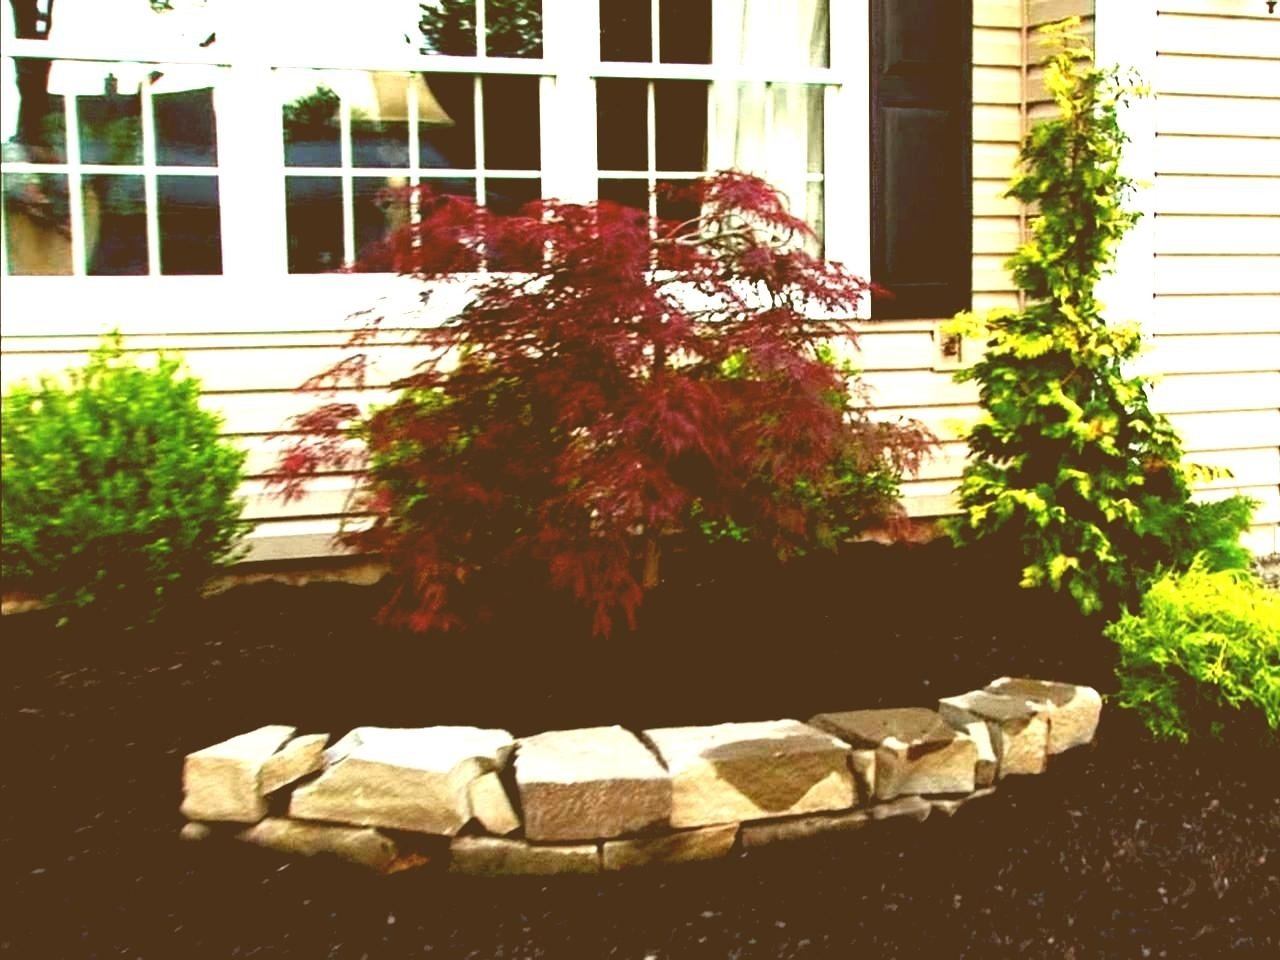 10 Stylish Simple Front Yard Landscaping Ideas On A Budget simple front yard landscaping ideas townhouse patio on a budget uk